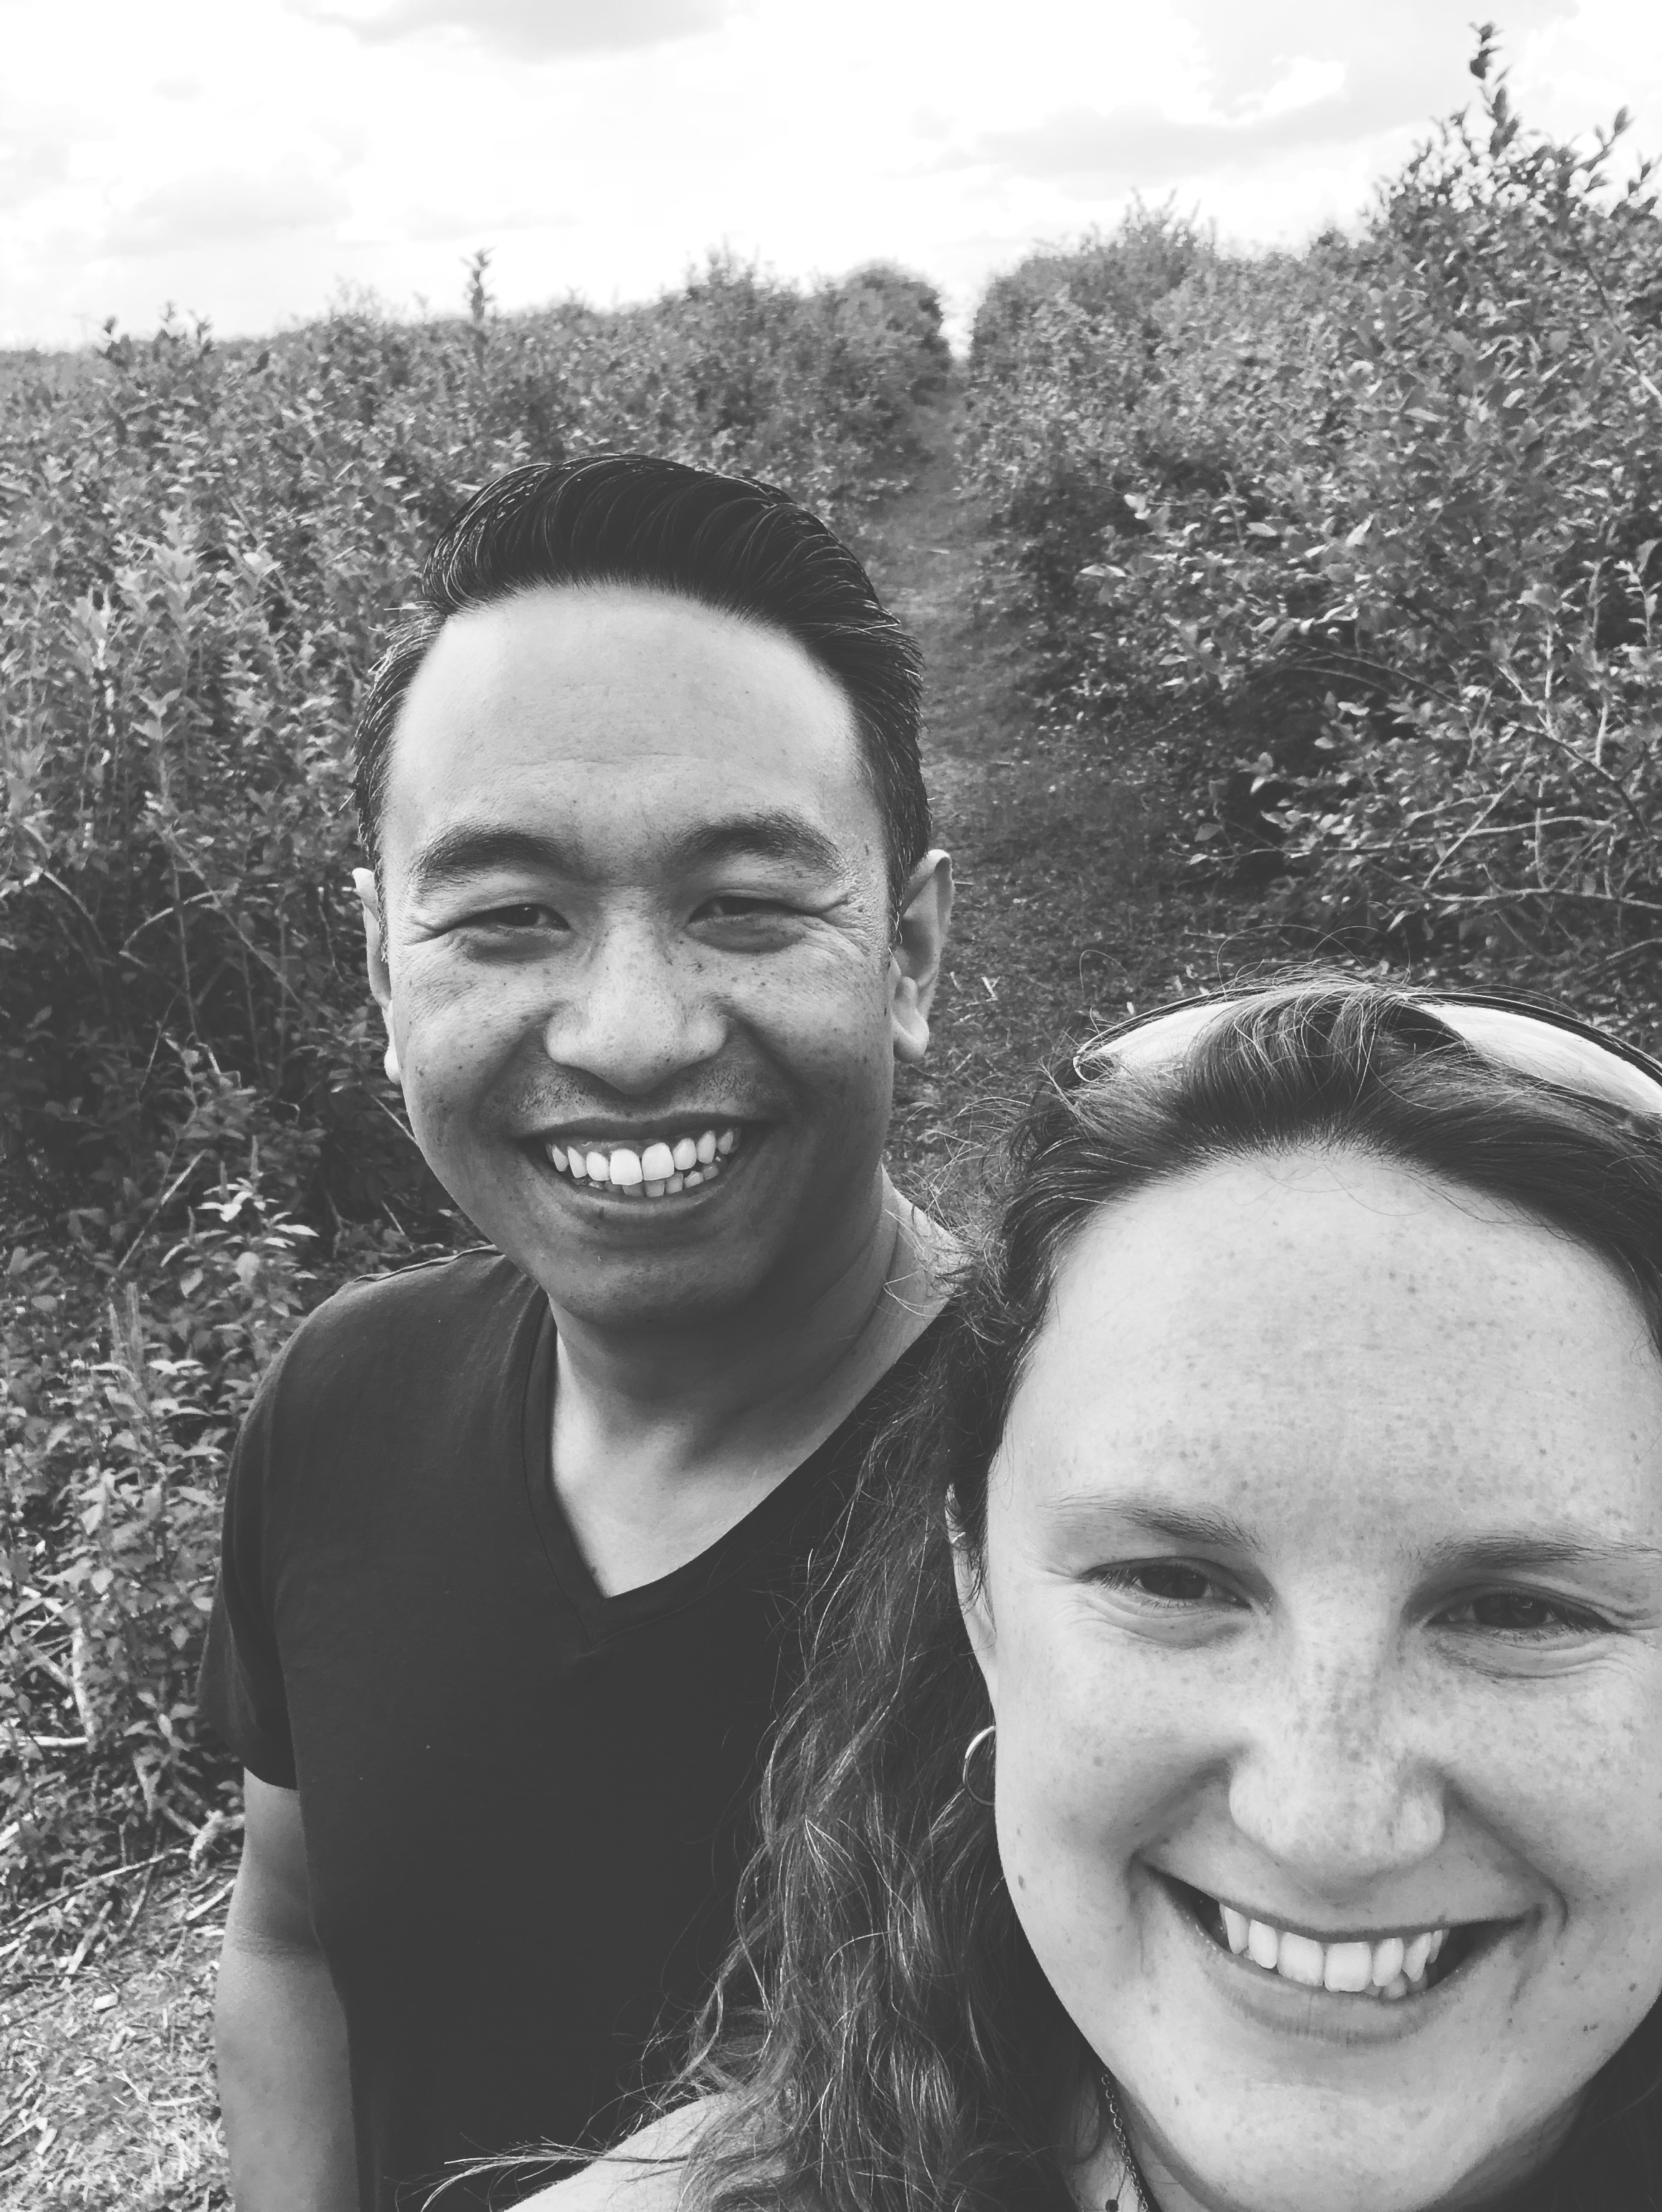 Come hang with husband and wife/momo buddies Chef Lama & Louisa. Chef Lama has 25 years of experience cooking Nepalese and Indian food. More importantly, he's been eating momos since before he could walk.